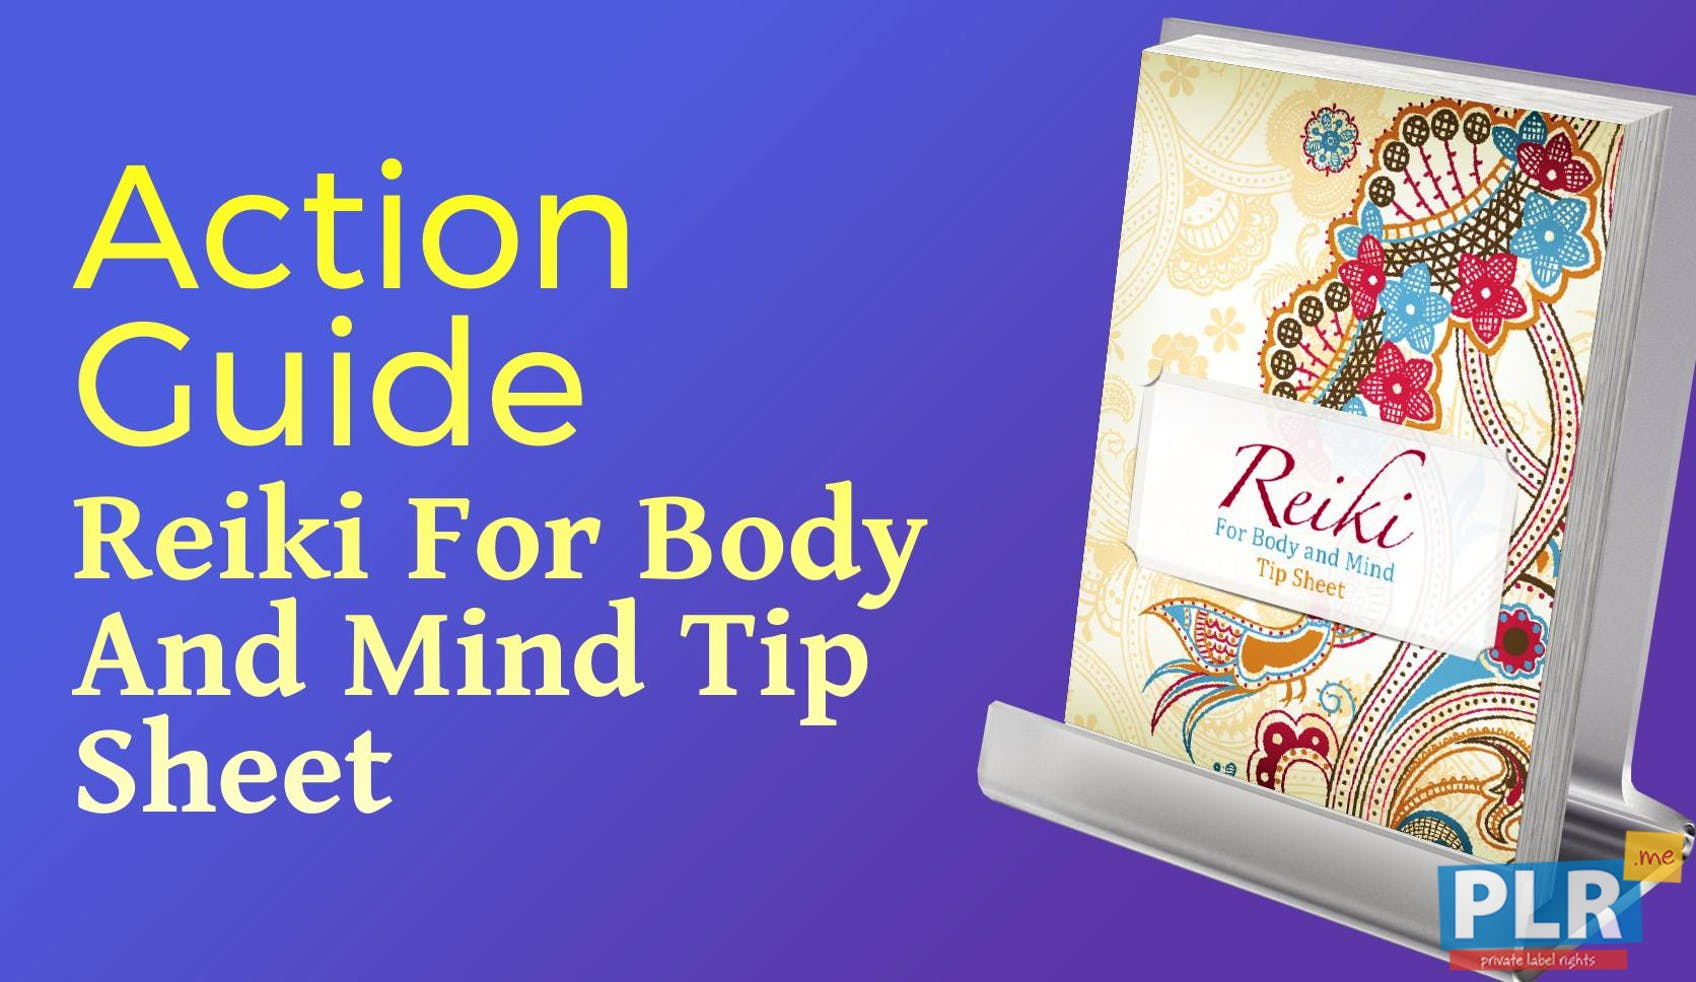 Reiki For Body And Mind Tip Sheet